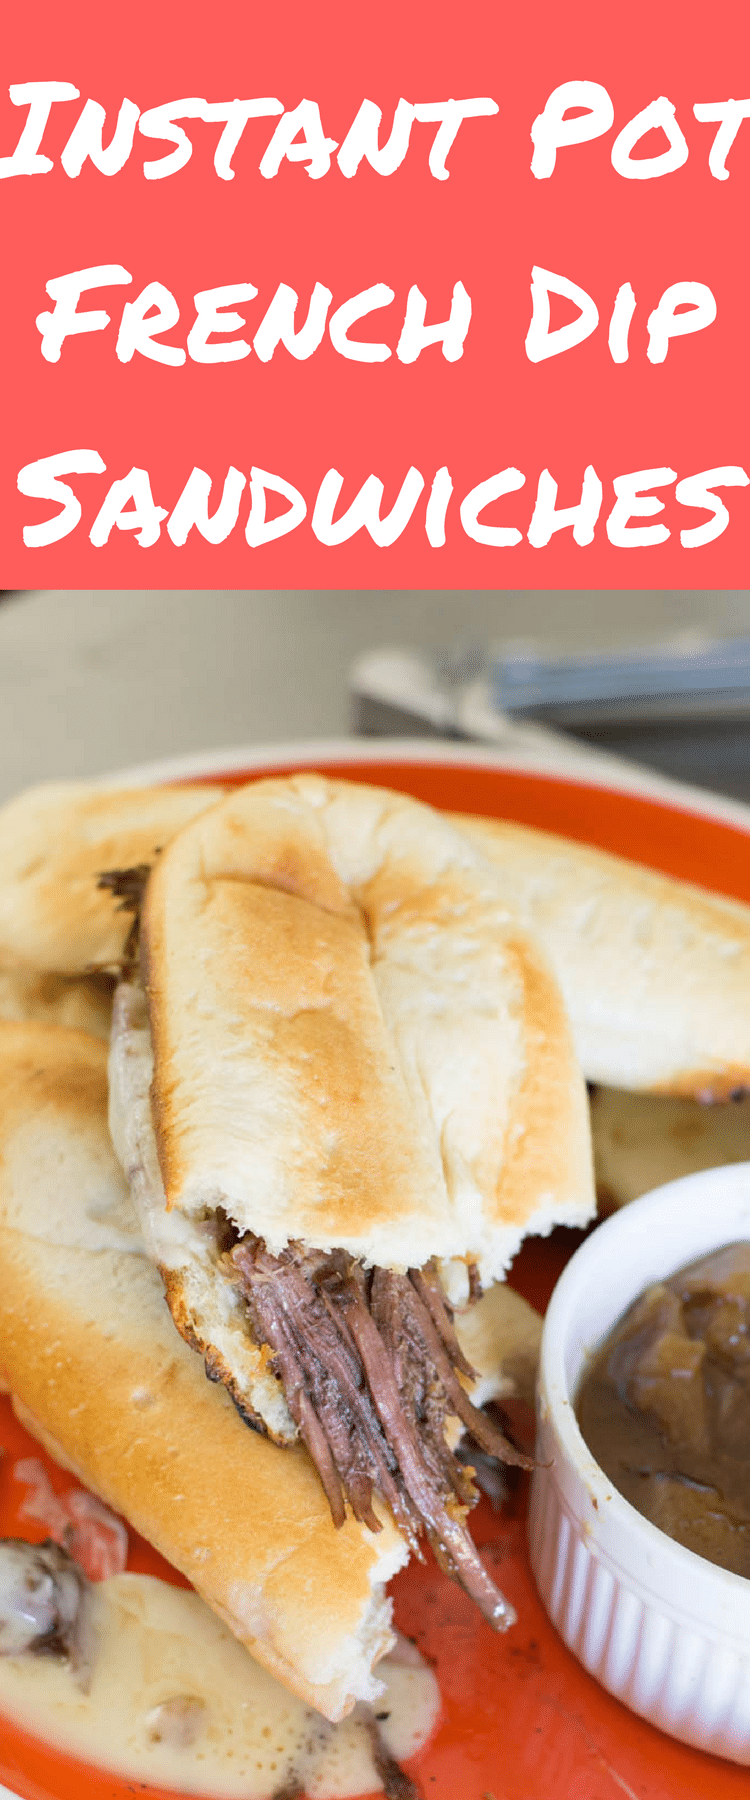 Instant Pot French Dip Sandwiches / French Dip Au Jus / Sandwich